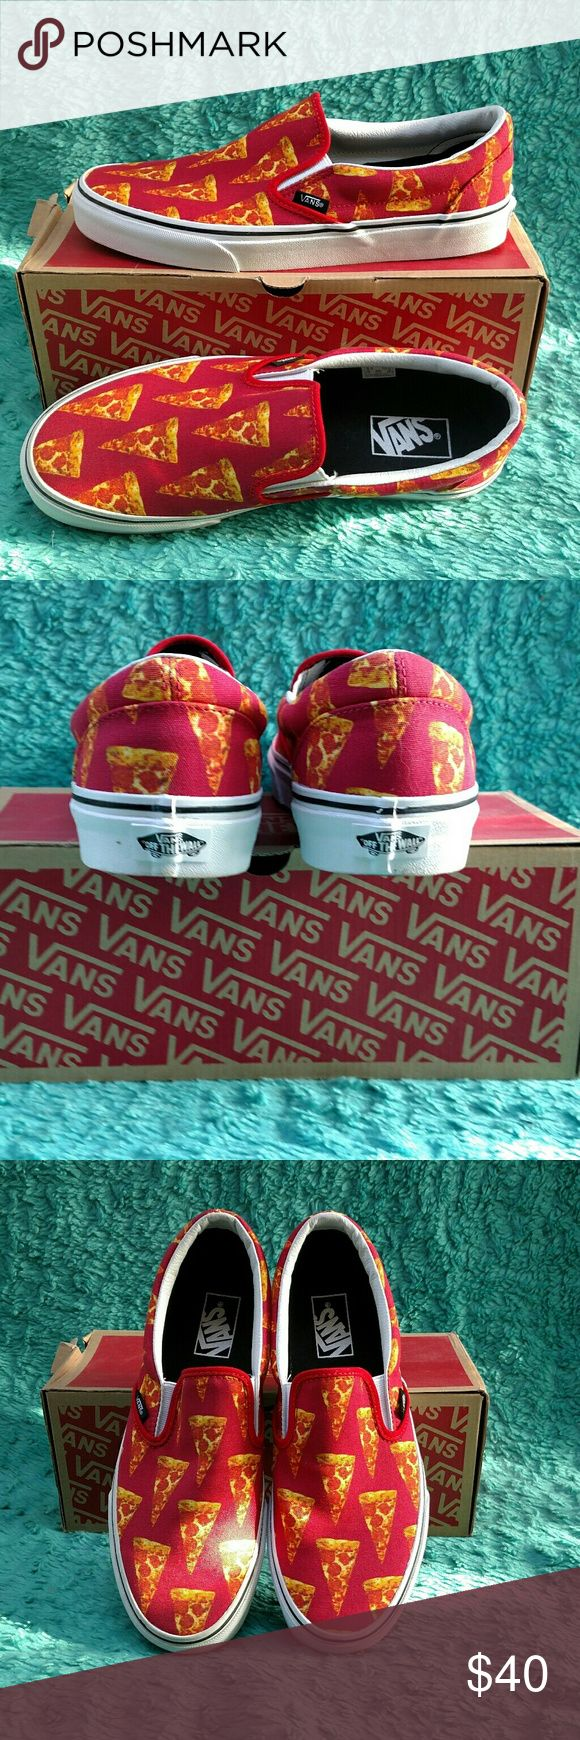 Pizza Vans slip-ons NIB Men's 8.5 Women's 10-10.5 These are brand new NEVER worn in box Vans Pizza Slip-ons. Fit is more like a 10.5 for women.  These sell new for $55 and they are out of stock. Vans Shoes Sneakers